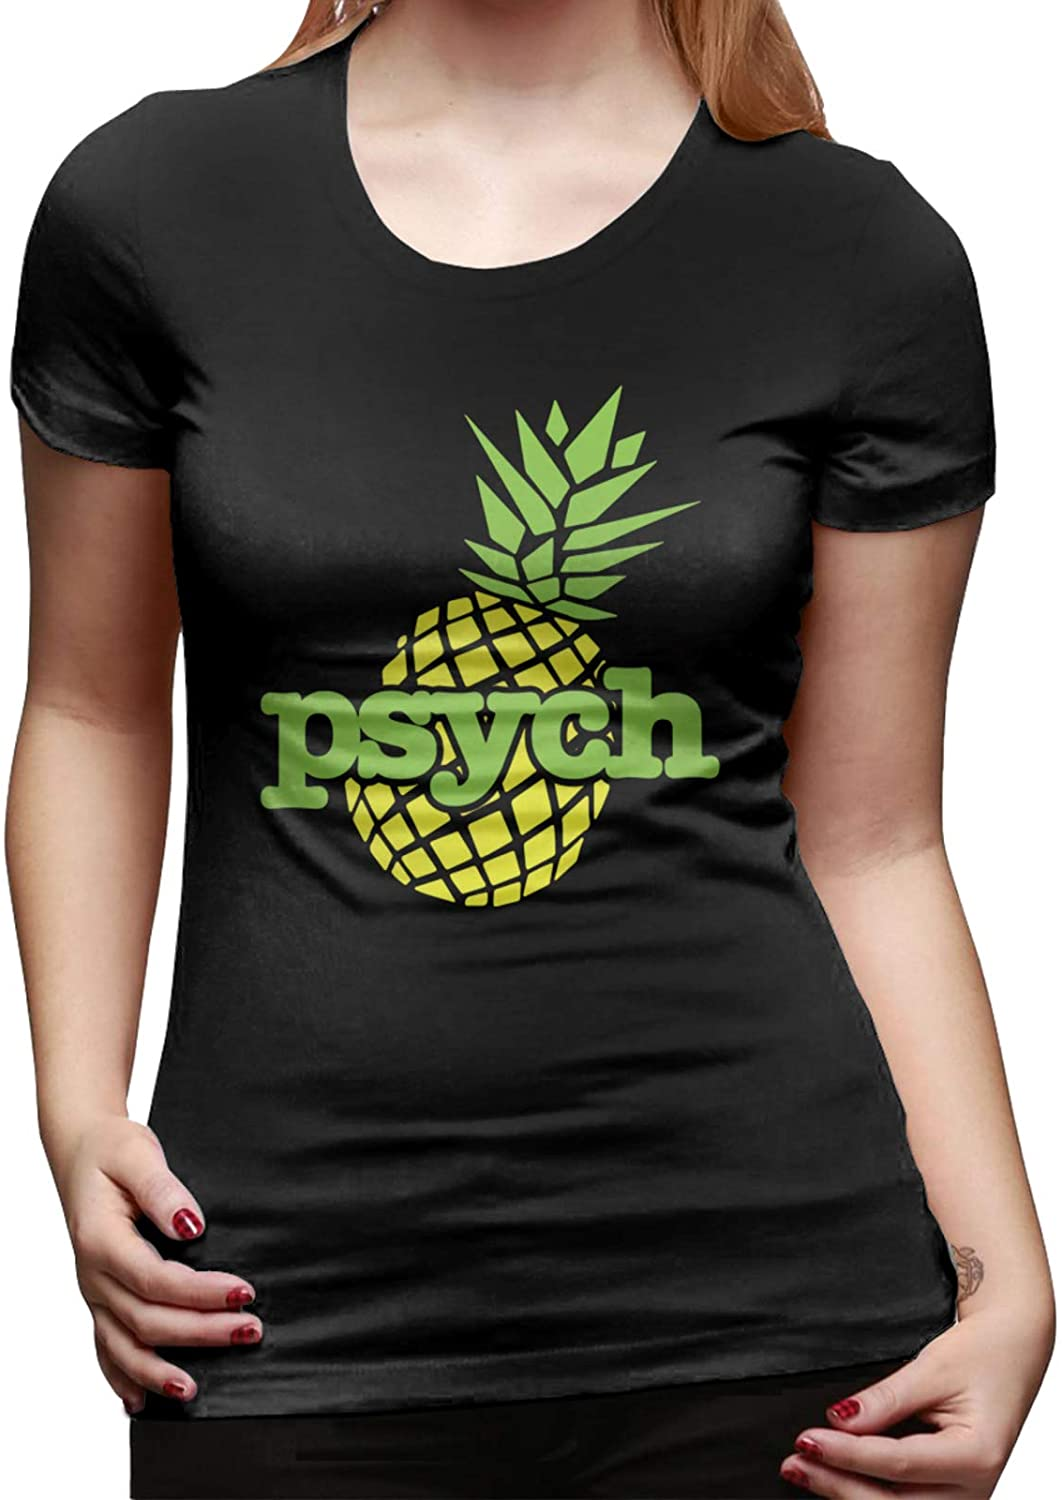 Psych Pineapple Women Short Sleeve Soft Crew Neck Tee Shirts